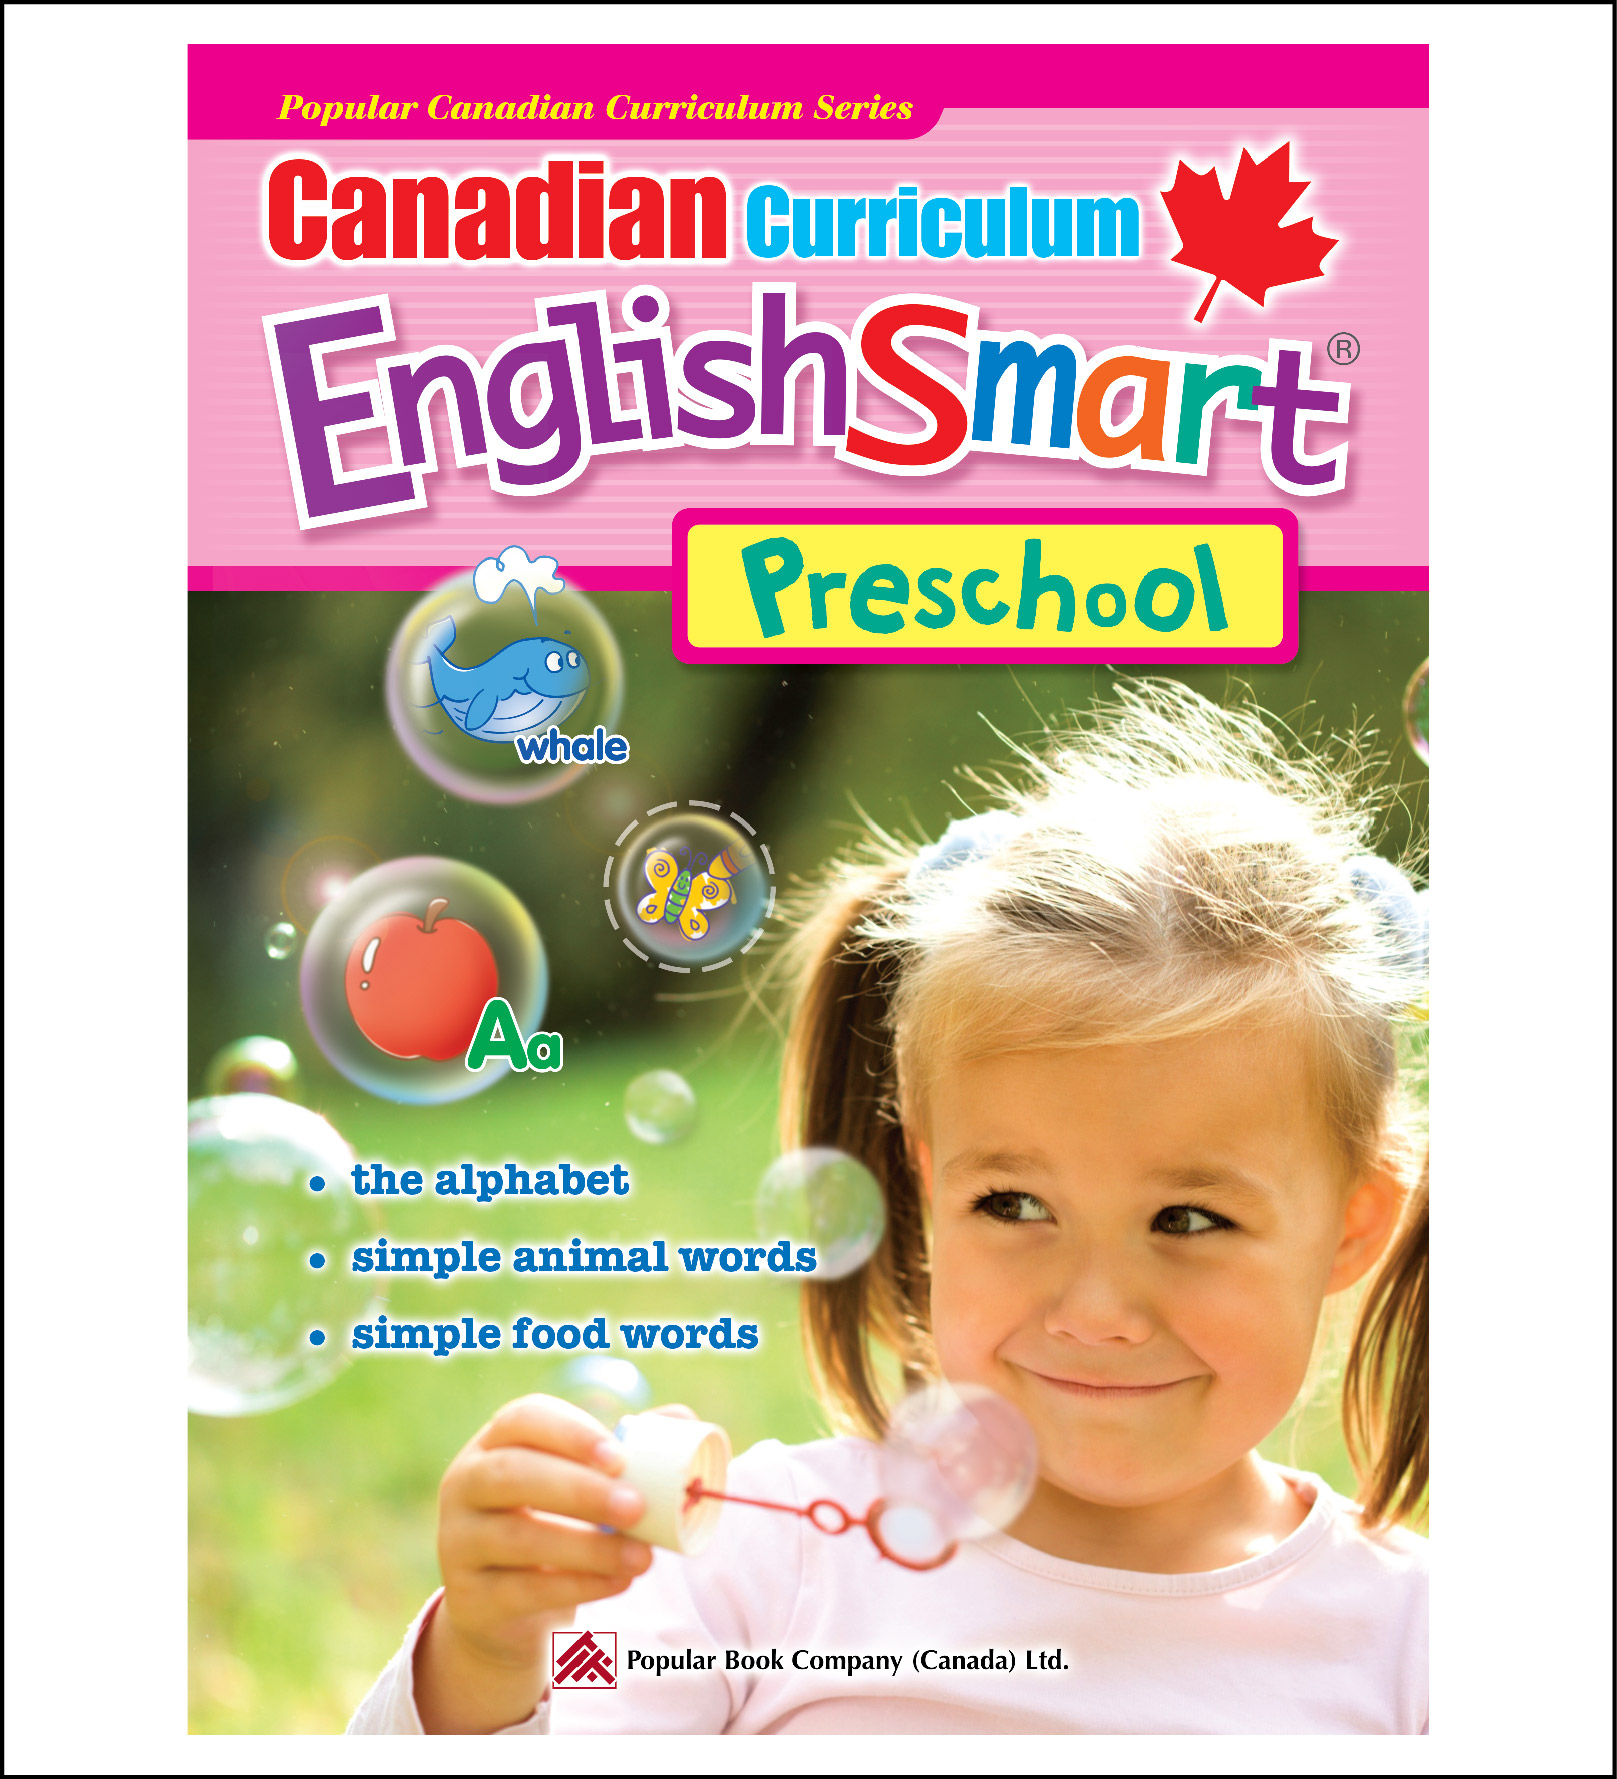 Activty Book for Kids Canadian Curriculum EnglishSmart Preschool